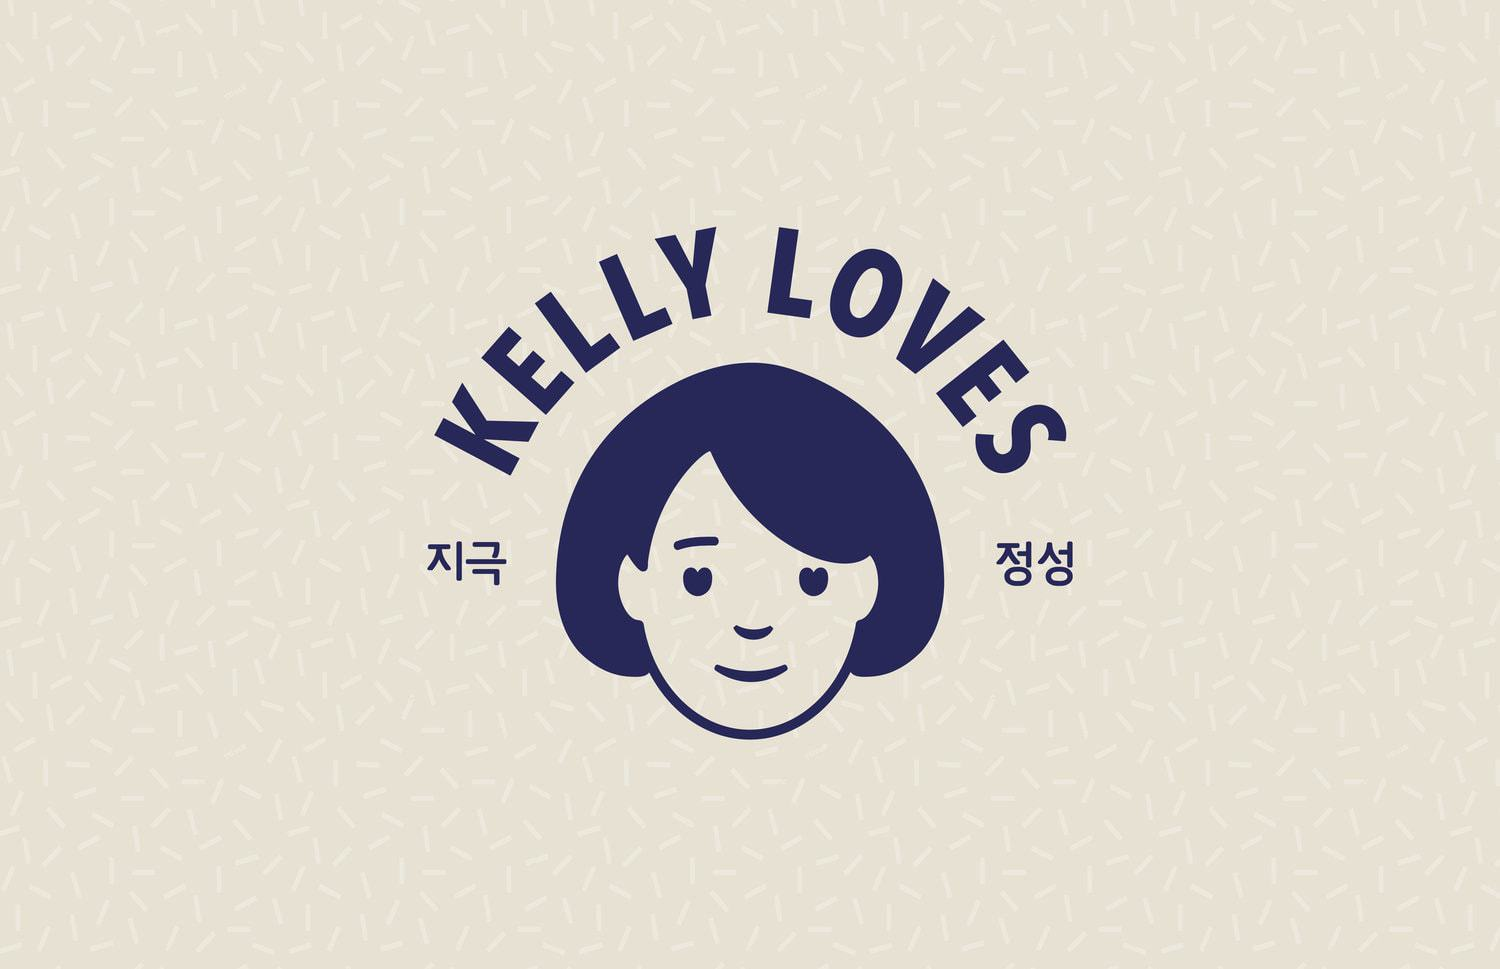 London Studio Without Creates Cross-cultural Brand Identity for New Asian Food Line Kelly Loves